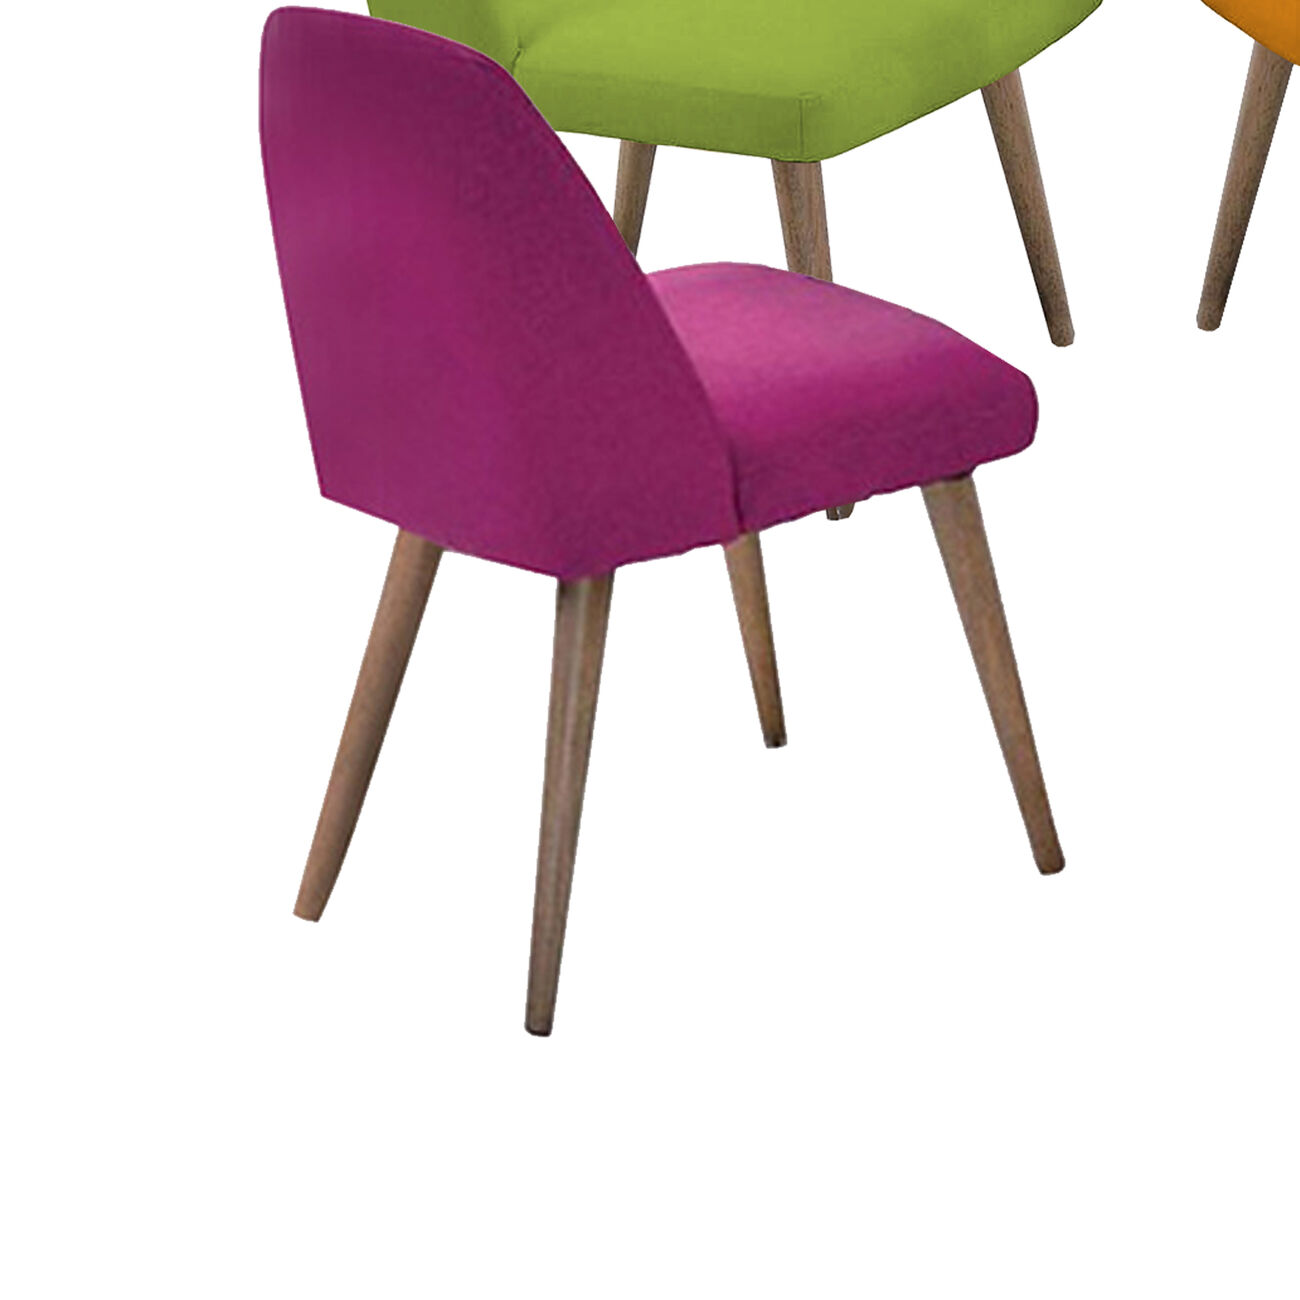 Wooden Side chairs, Pack of 4, (Green, Pink, Red, Orange)